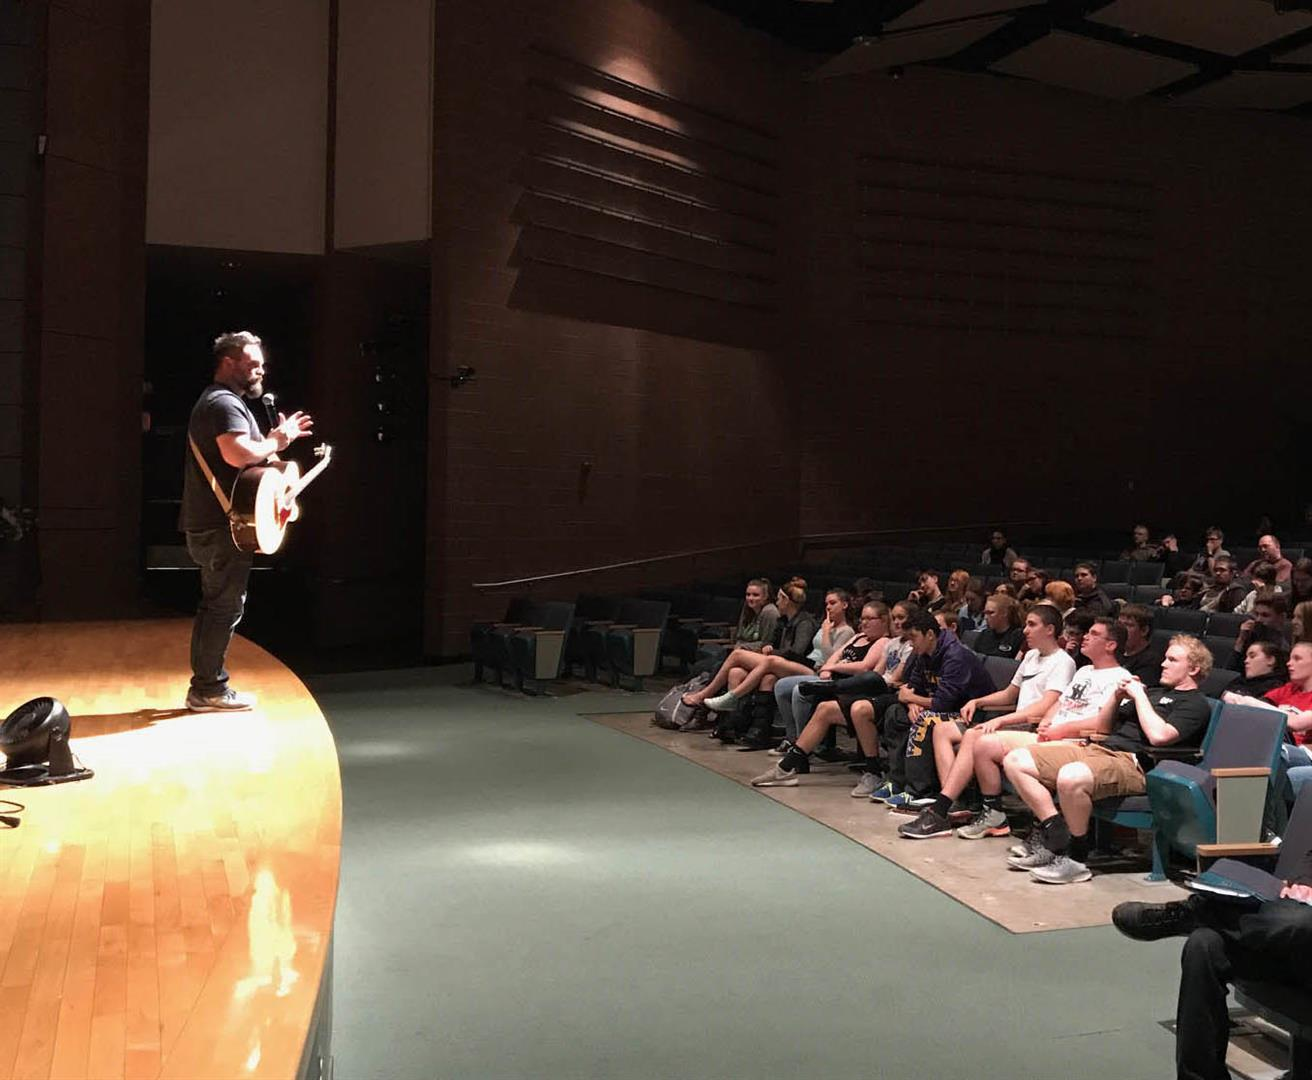 Jared Campbell is seen performing for students